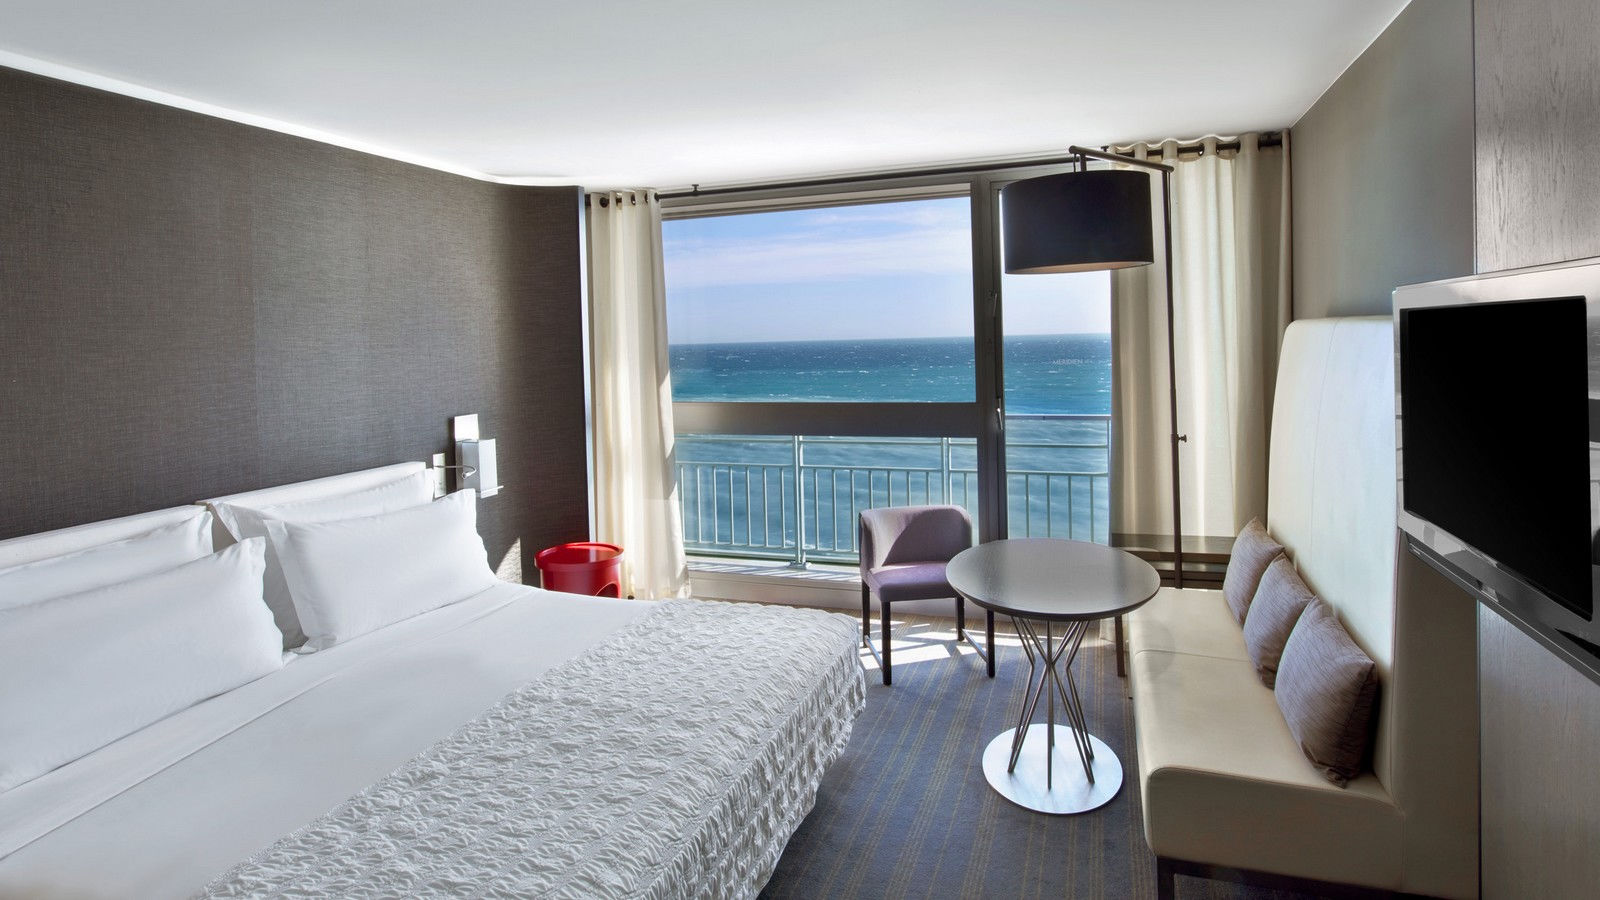 Deluxe Room Sea View in Le Meridien Nice